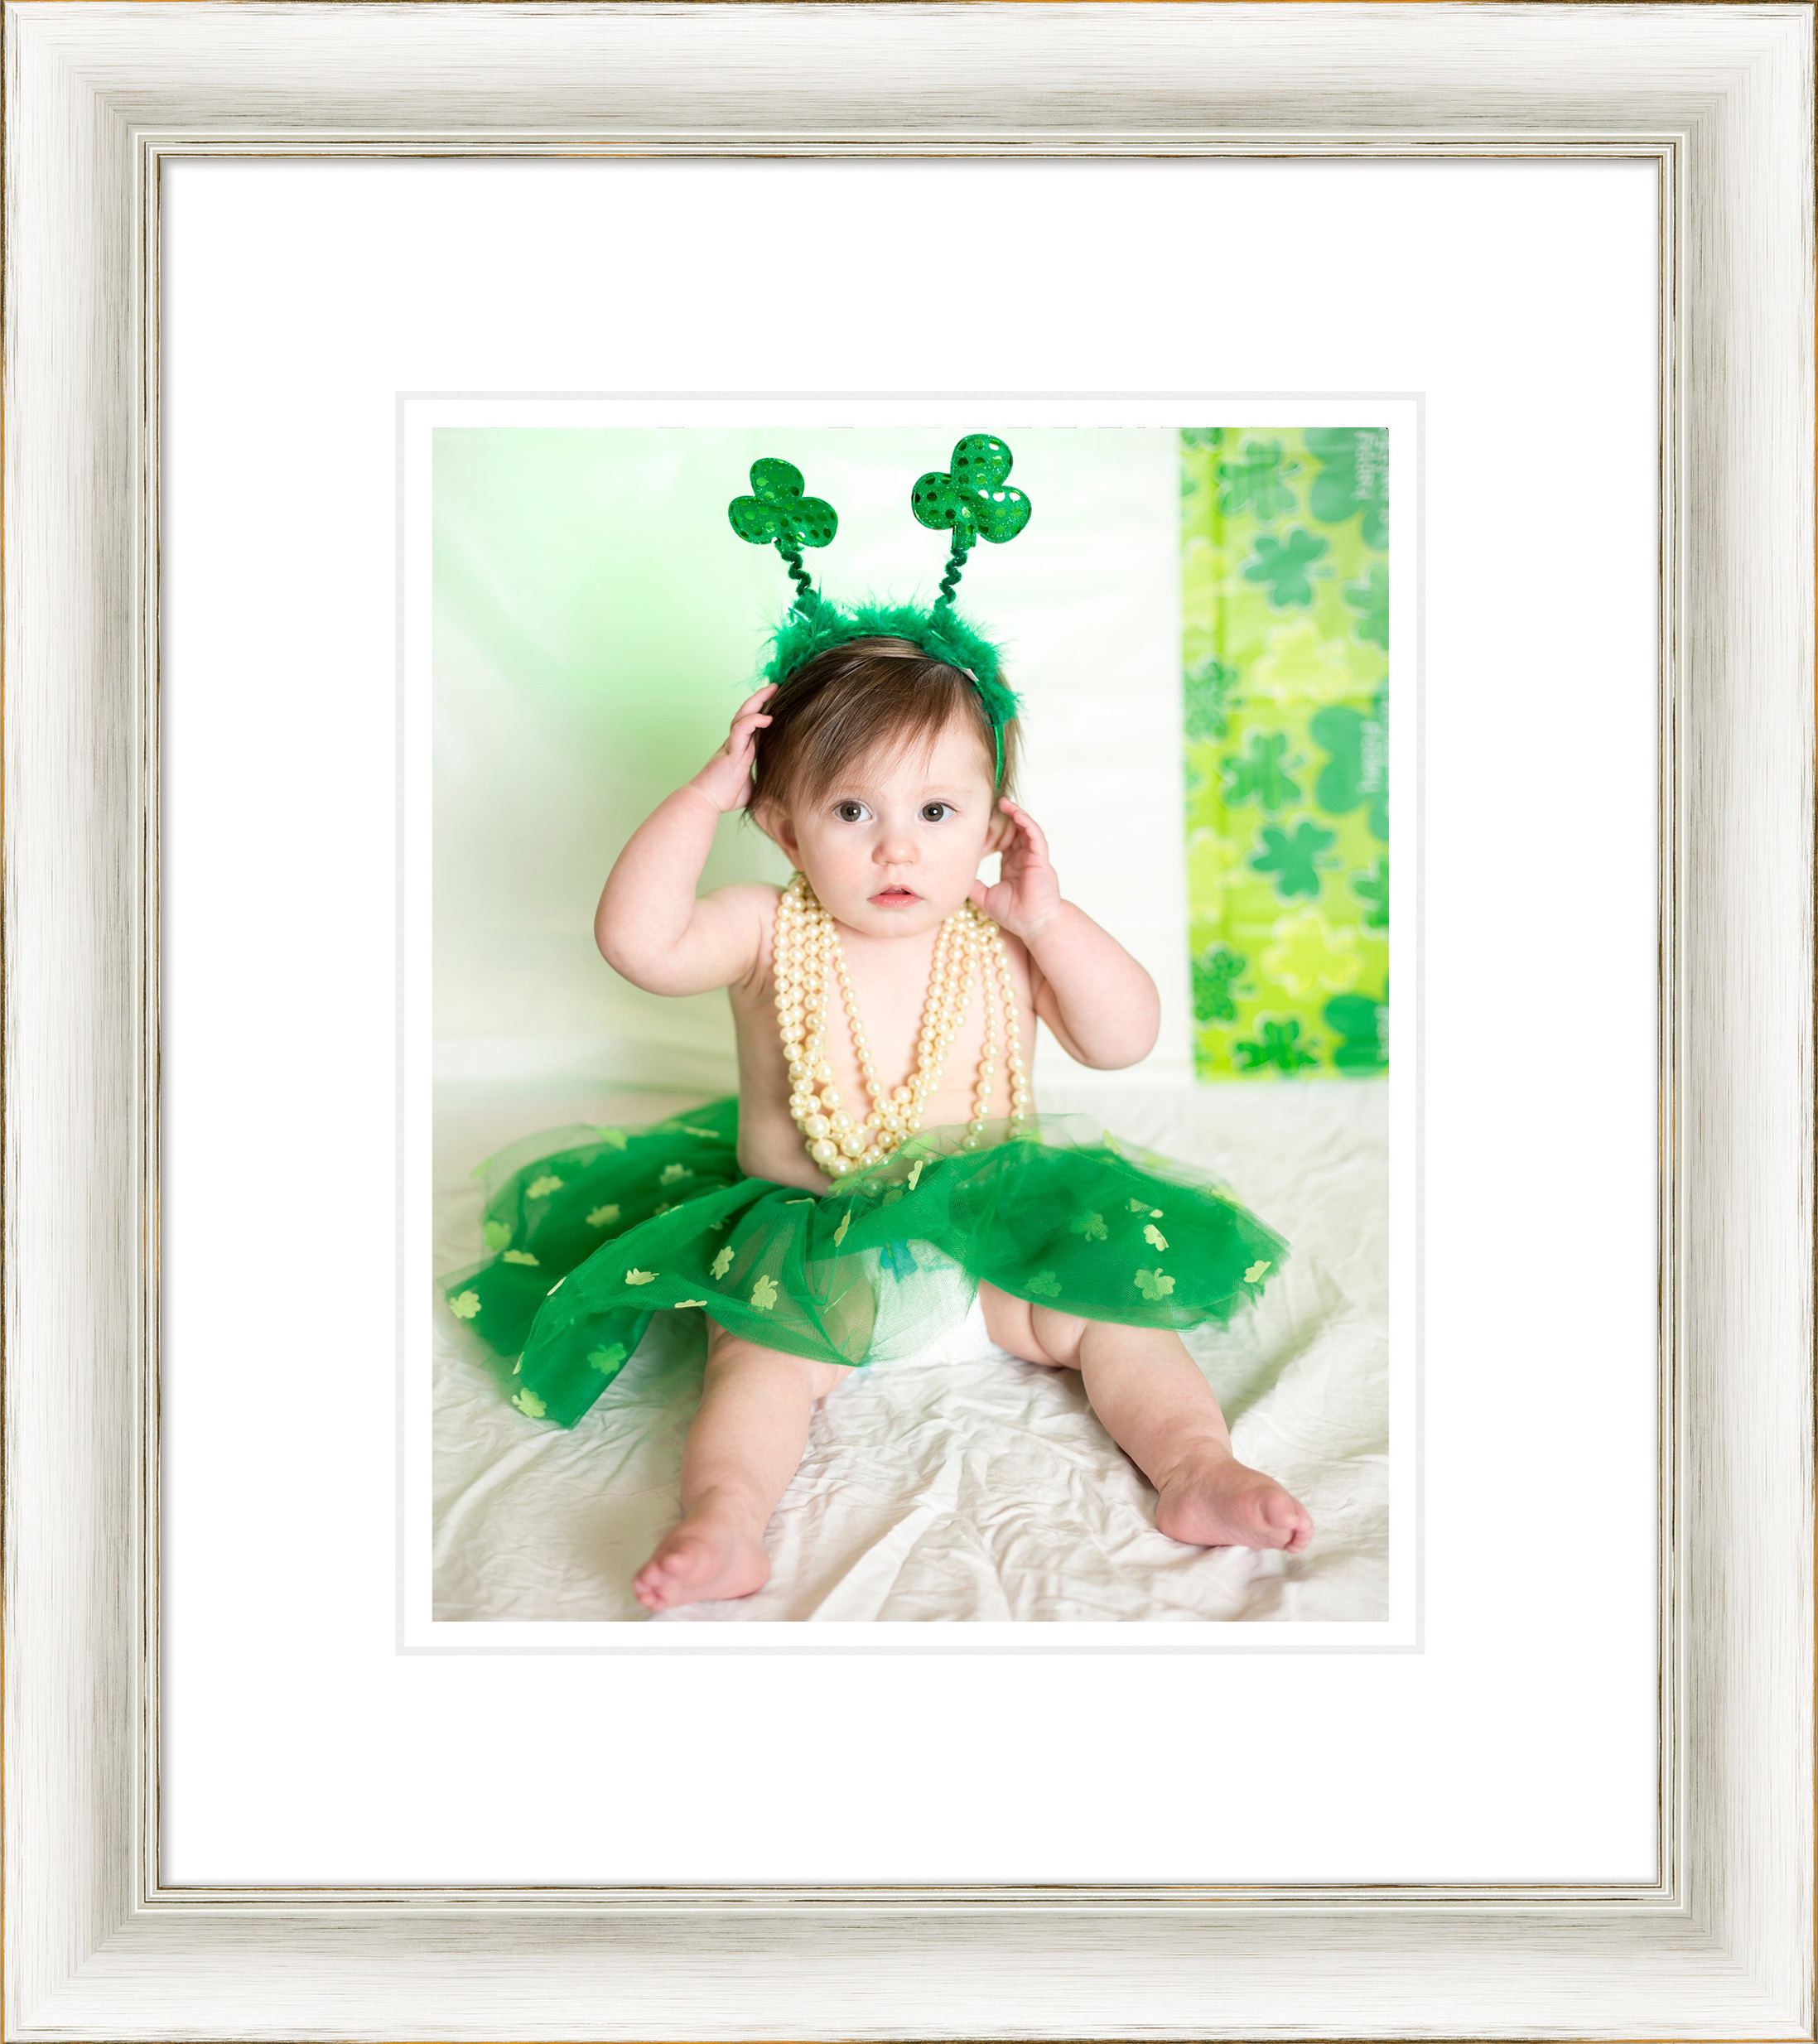 Framed st pats little girl